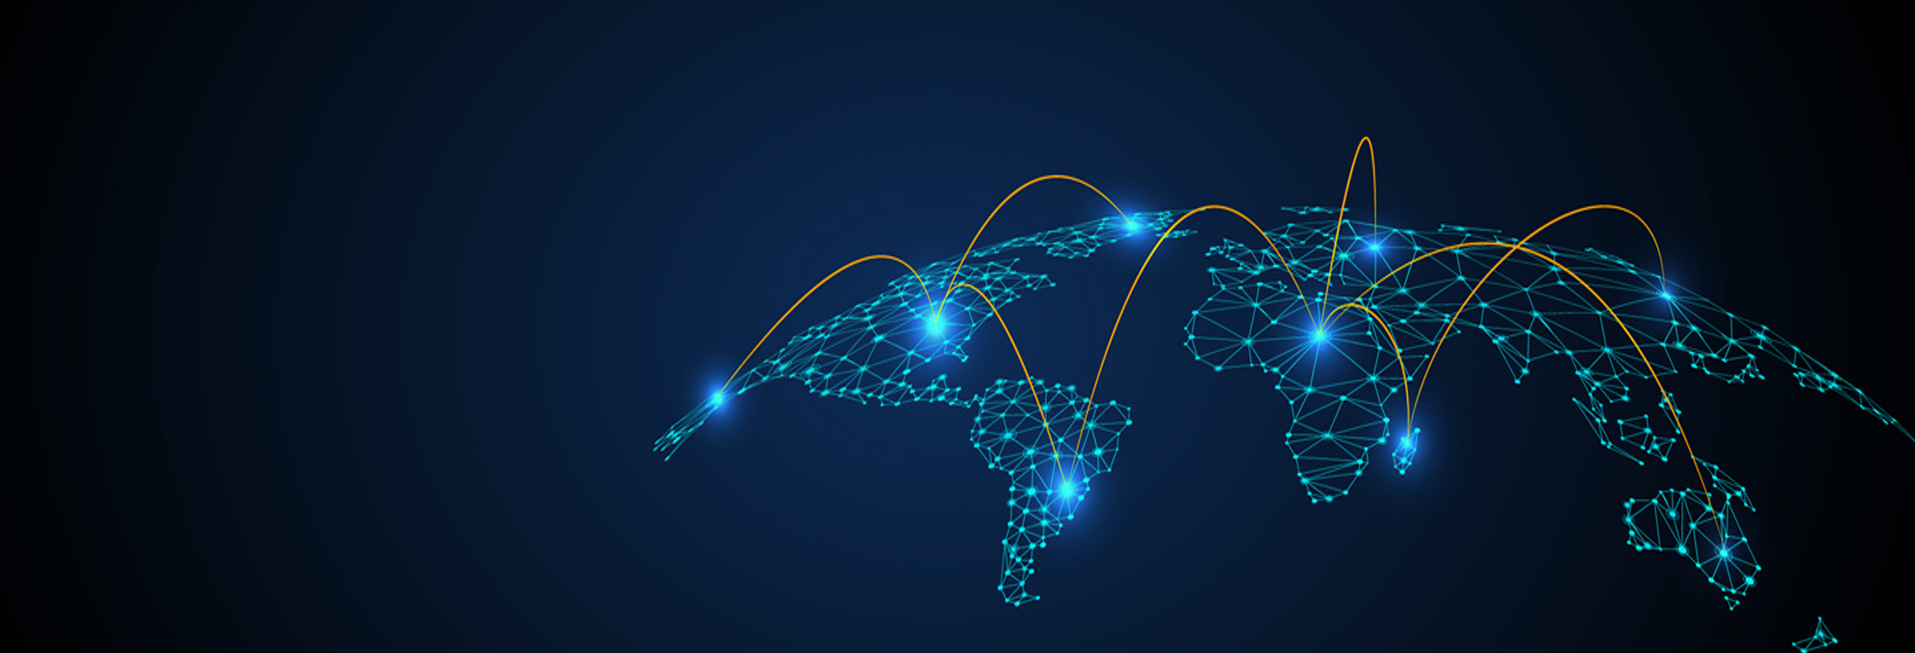 To Develop Global Network